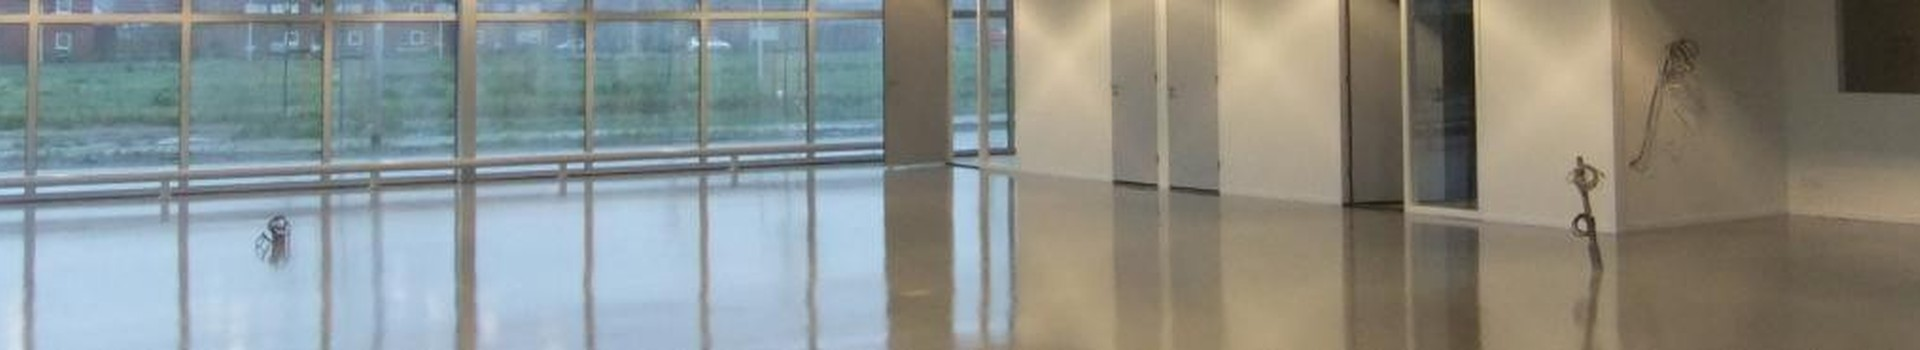 Epoxy coating%|%Epoxy coating%|%Epoxy coating